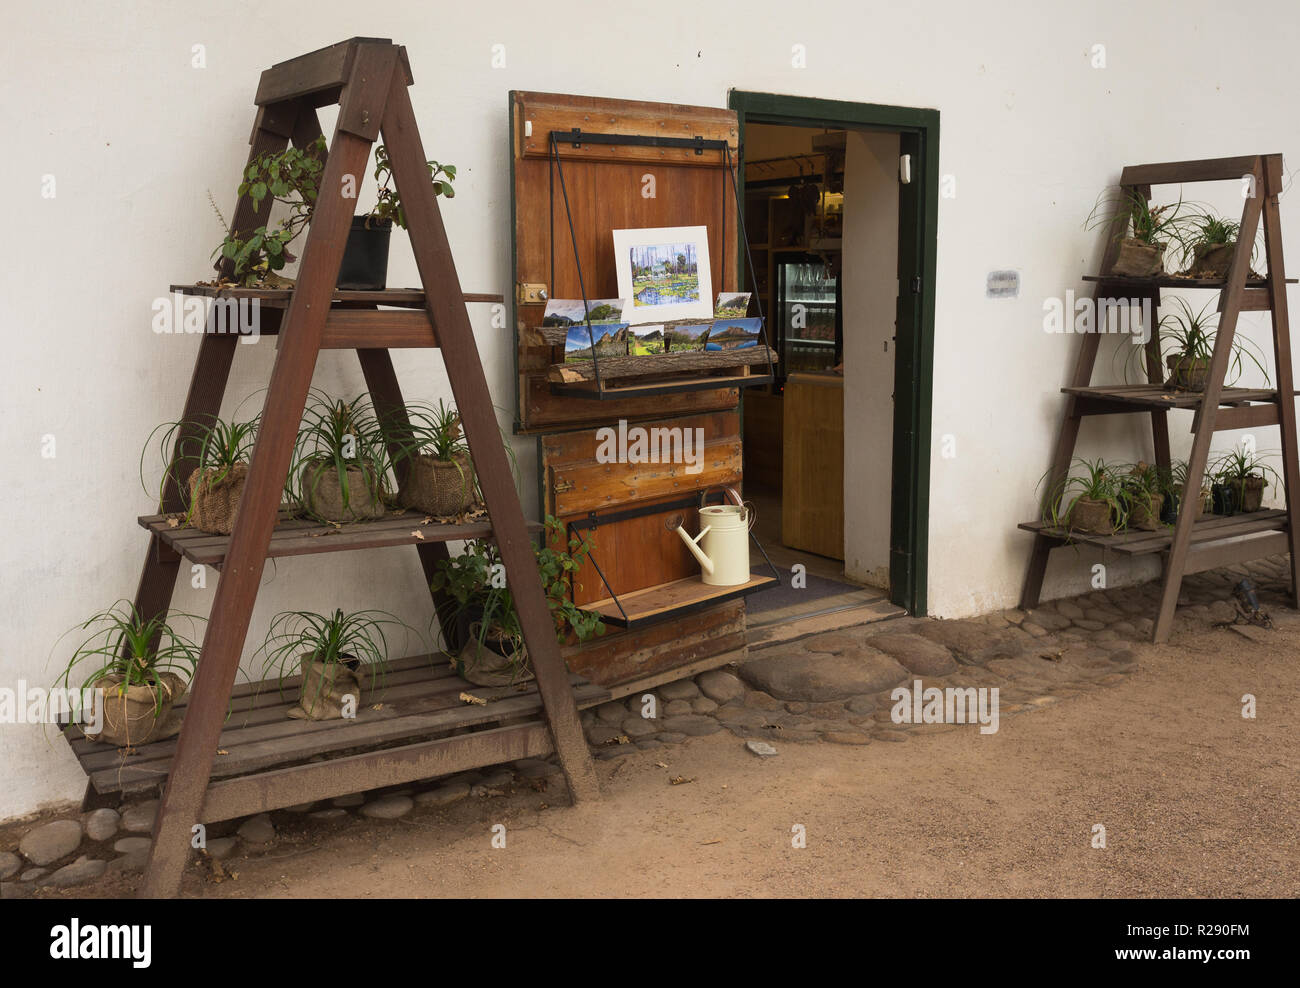 Wooden shelving or display unit, A-shape, outside opened door of shop holding potted plants or pot plants as decor on a shelf - Stock Image